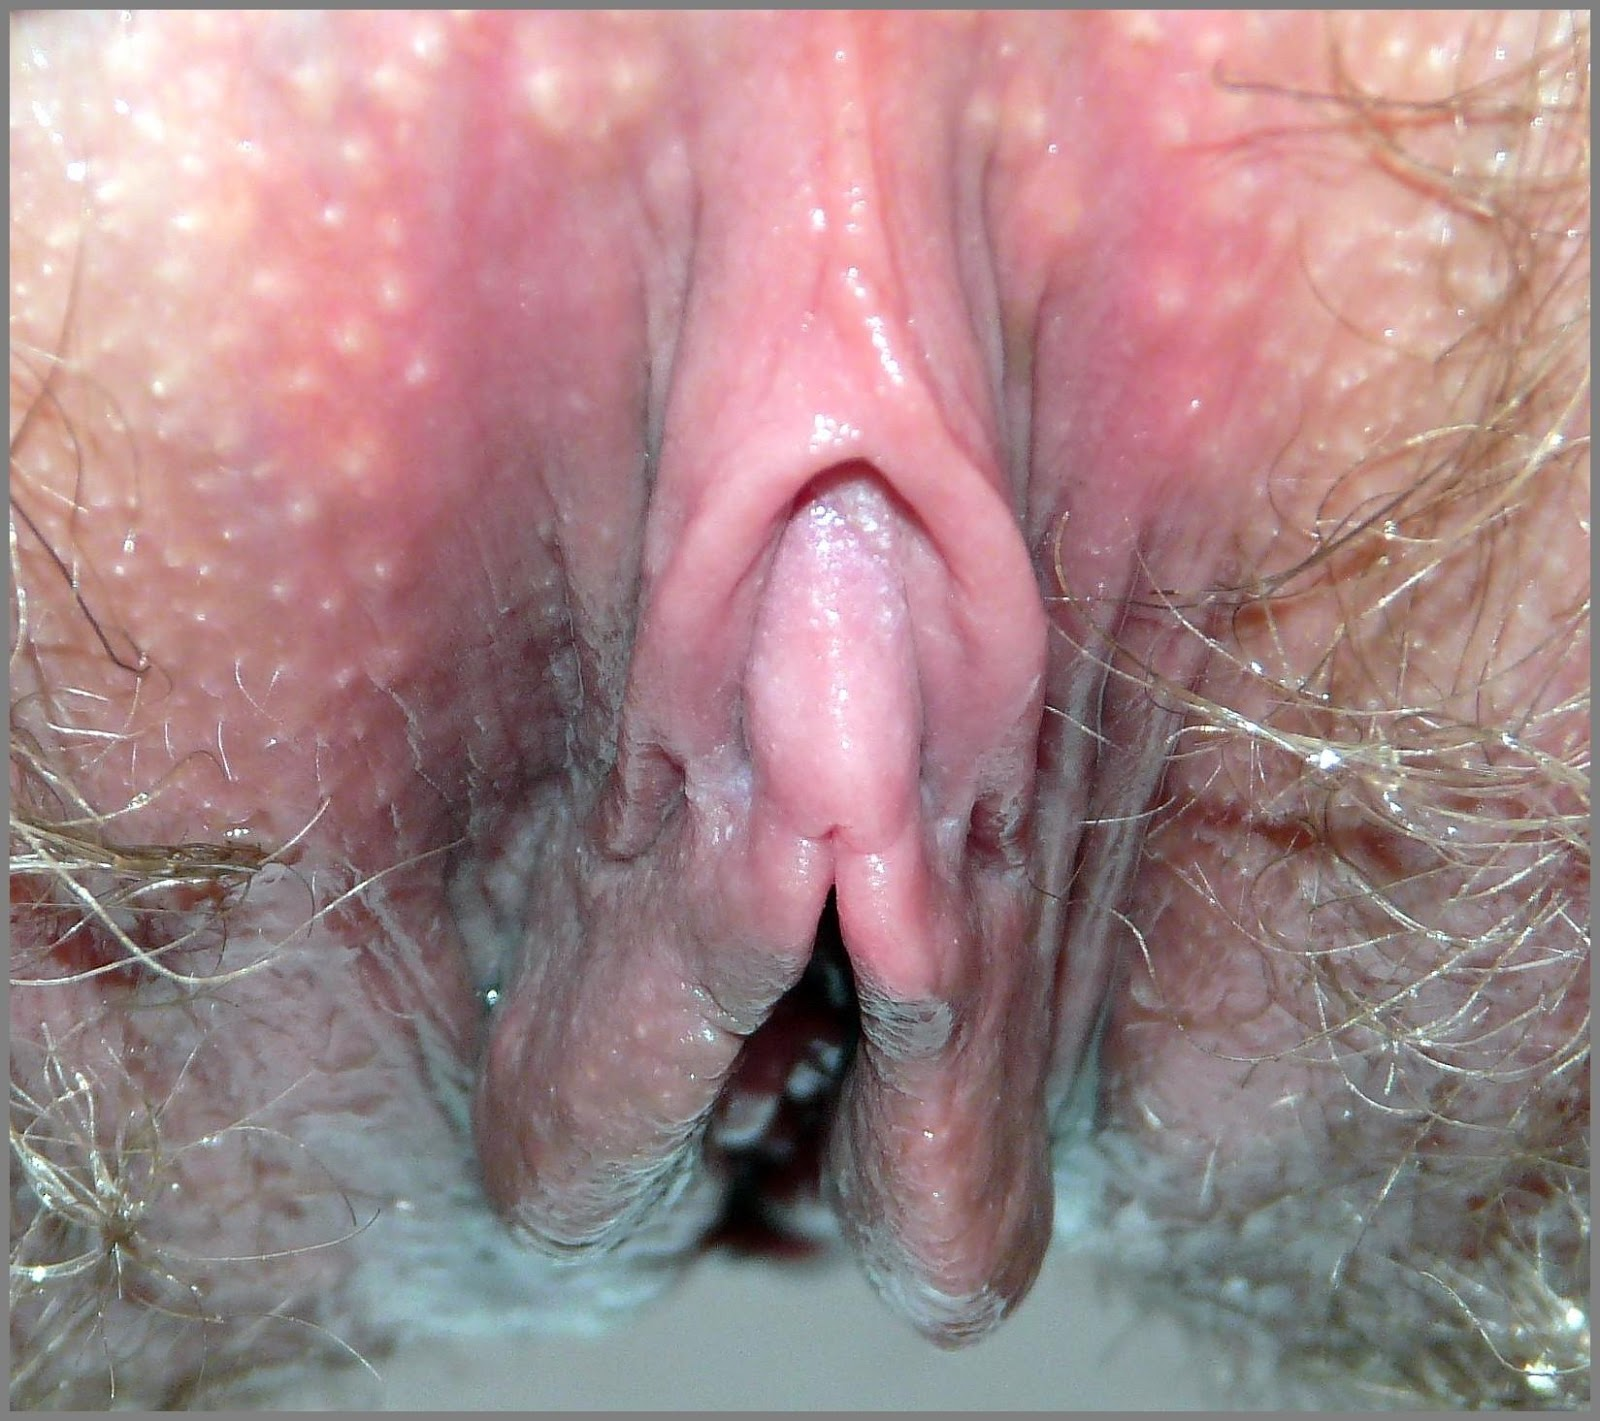 Such BBW hairy clitoris video want